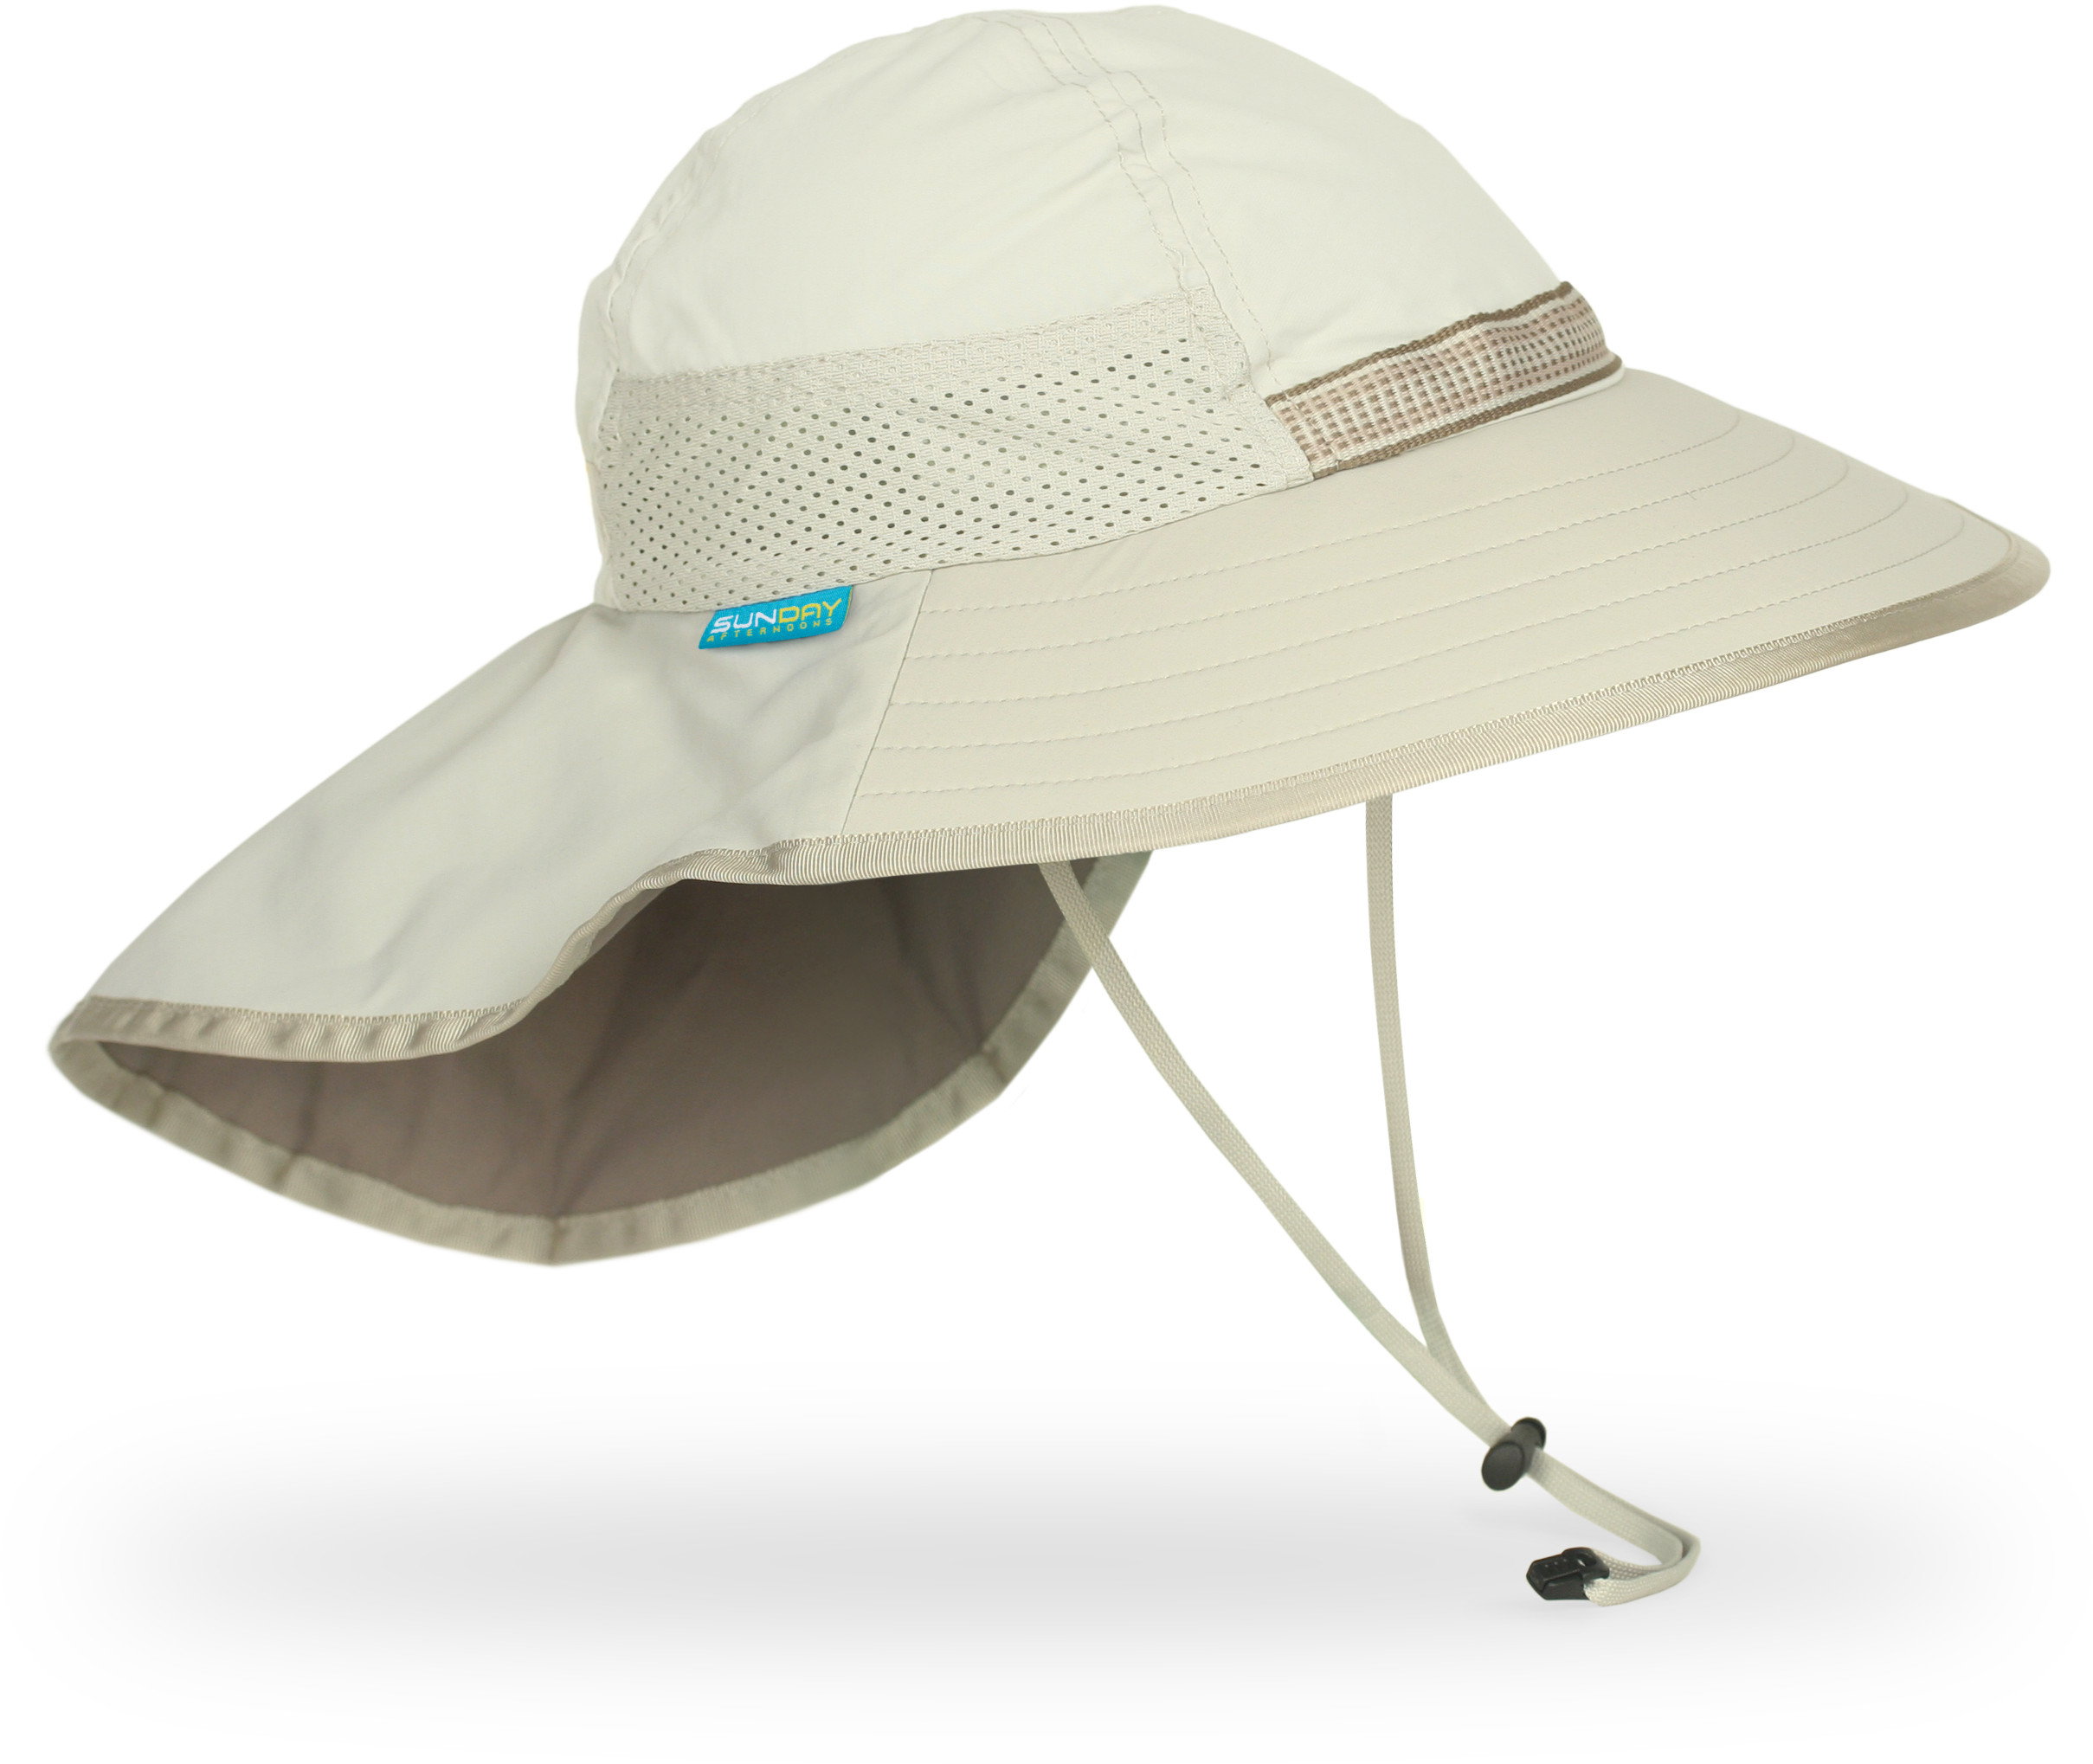 7987ab7153e Sunday Afternoons Play Hat - Kids — CampSaver